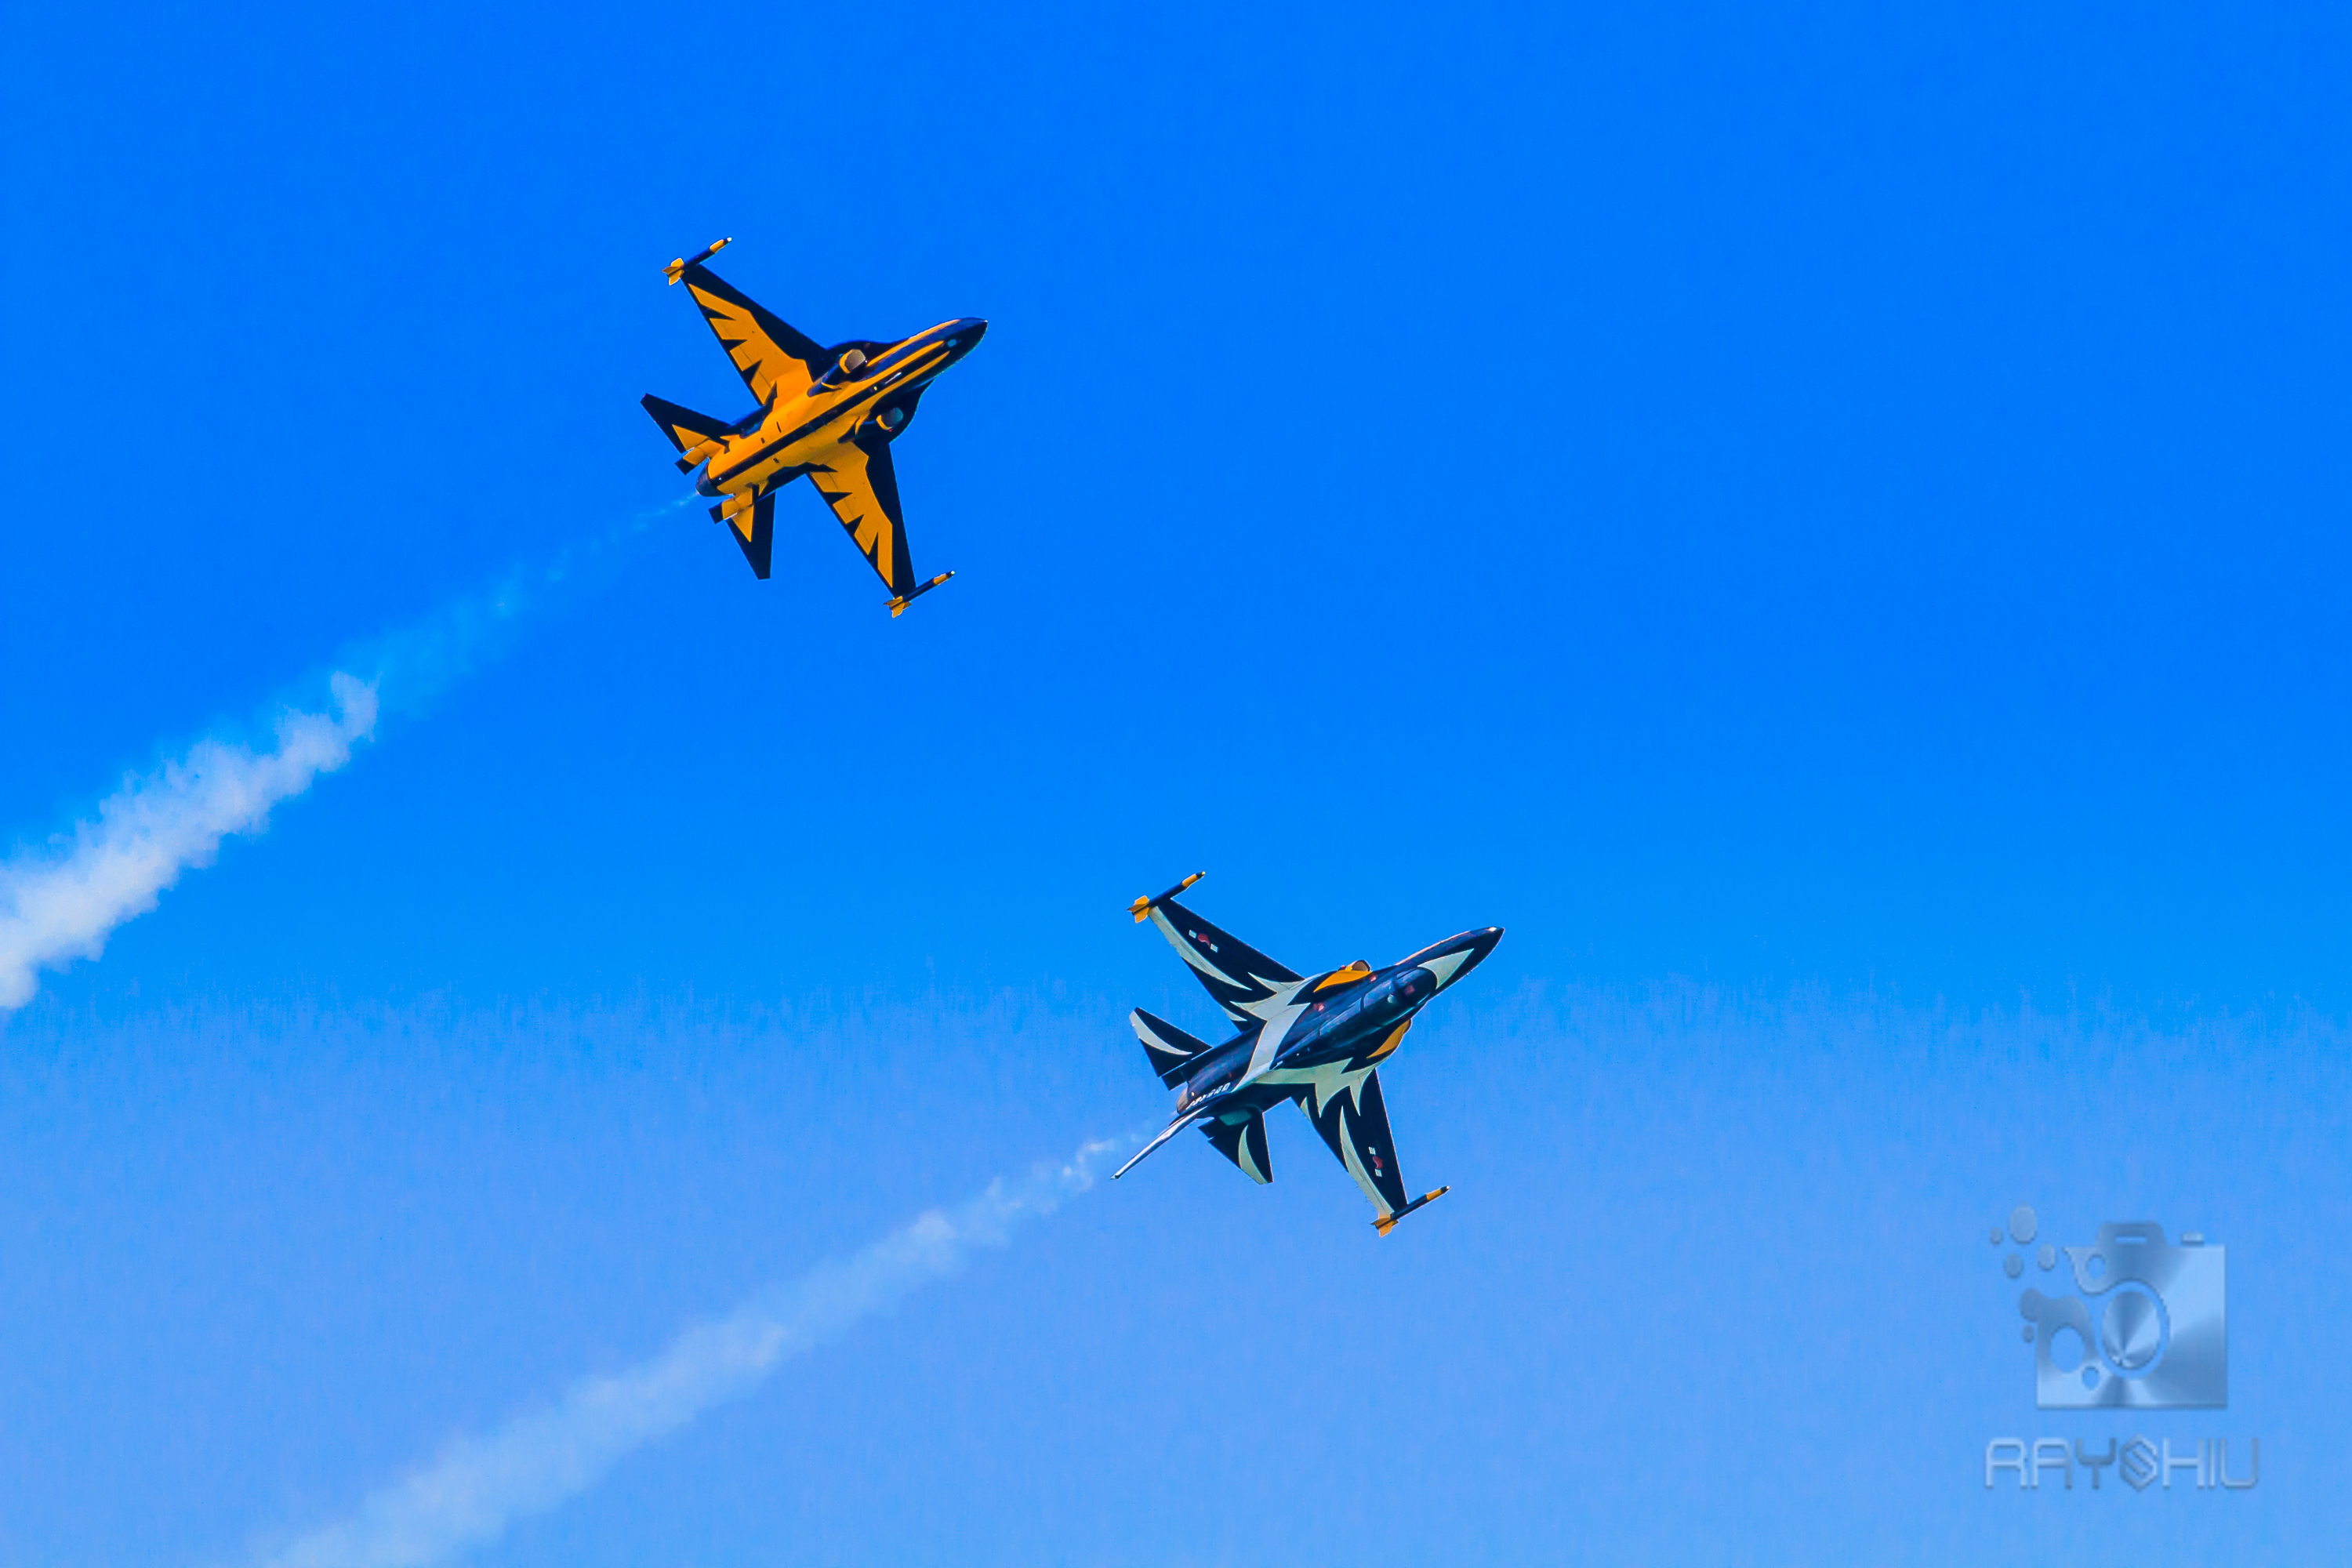 ROKAF Black Eagles showing off their livery, top and bottom